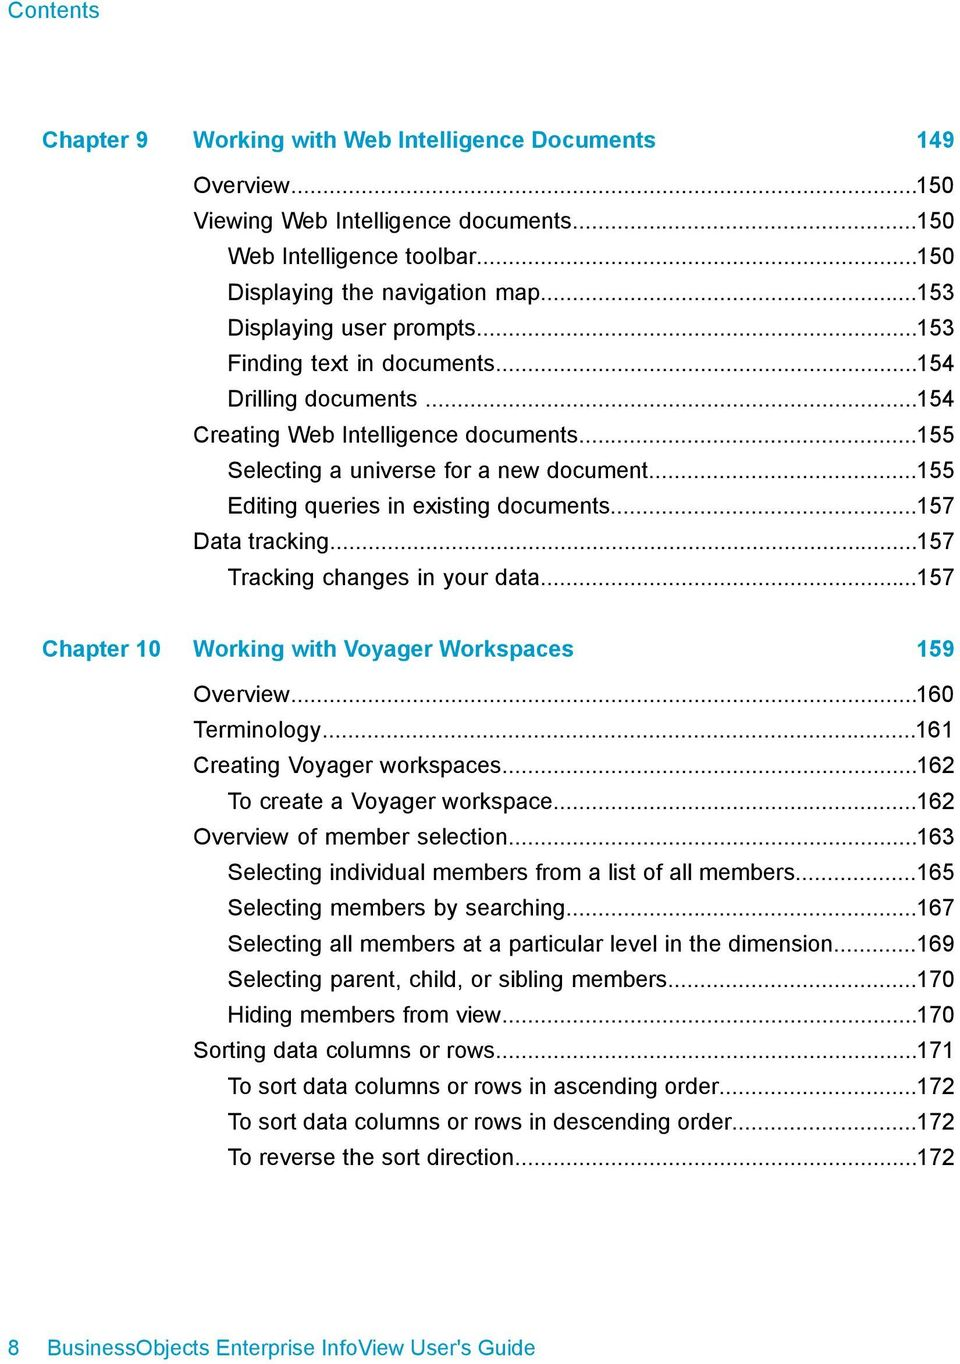 ..155 Editing queries in existing documents...157 Data tracking...157 Tracking changes in your data...157 Chapter 10 Working with Voyager Workspaces 159 Overview...160 Terminology.